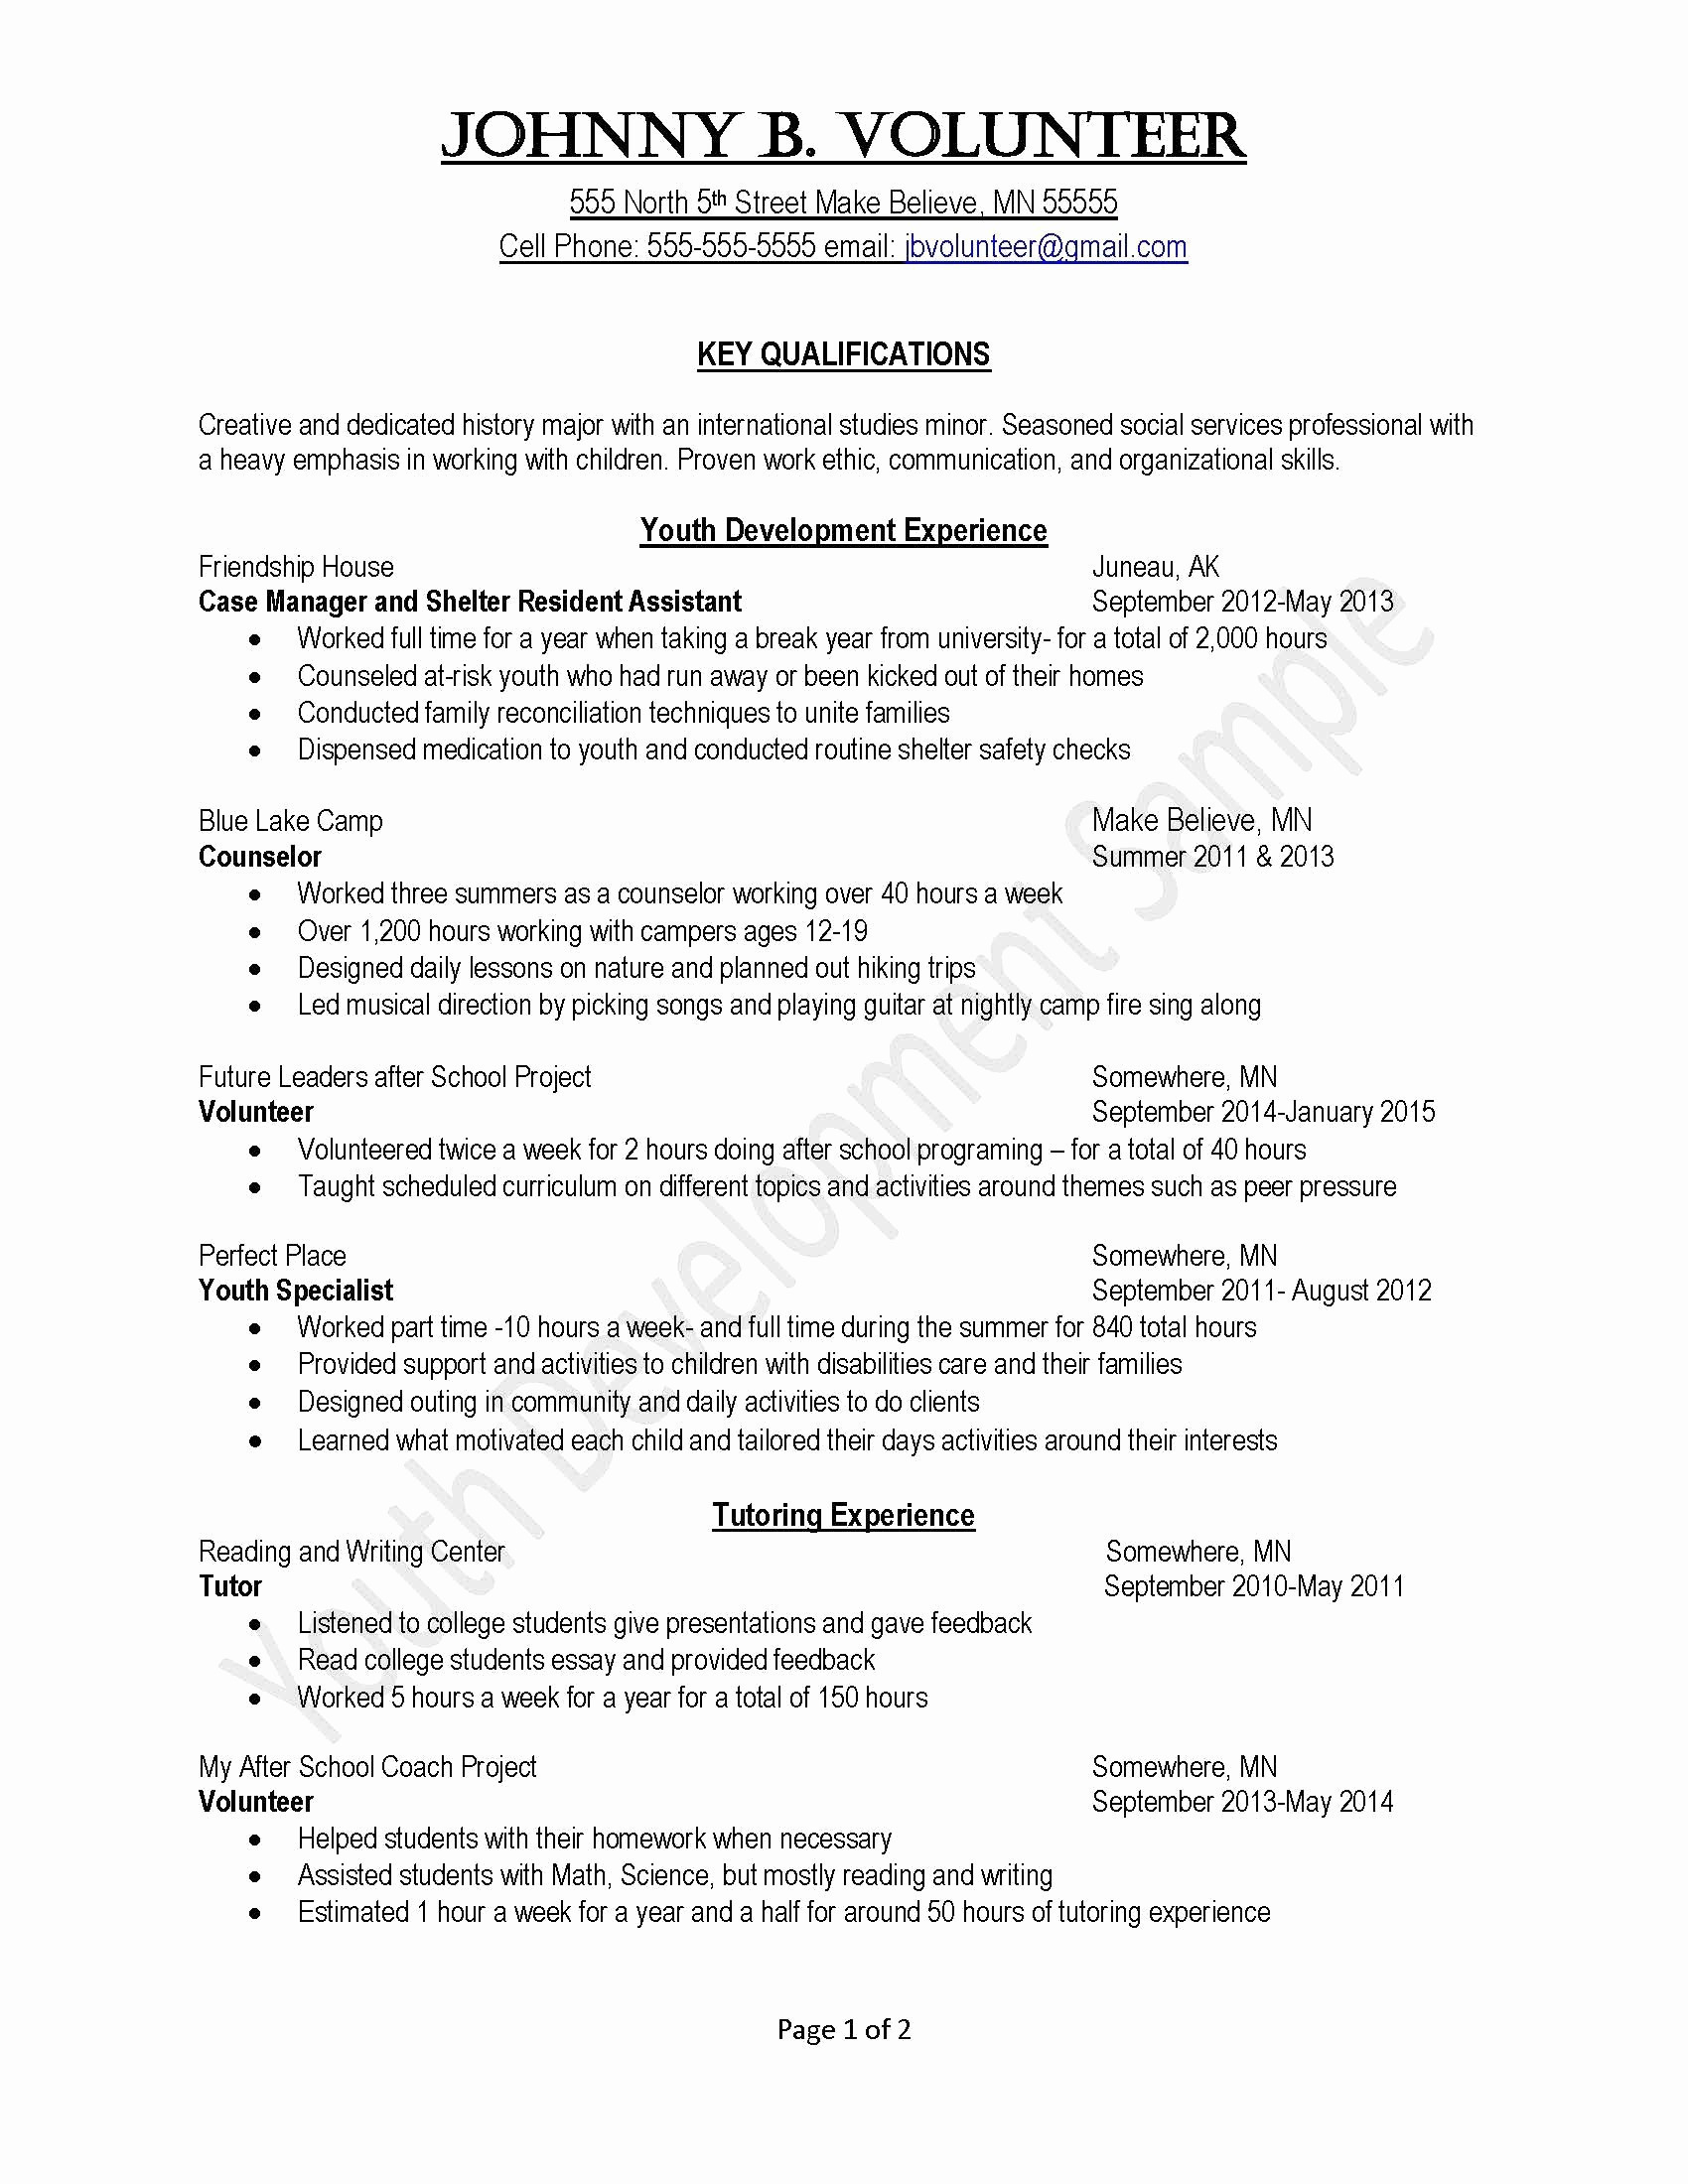 Internship Resume Sample for College Students - Sample Resume for College Student Applying for Internship – Fresh